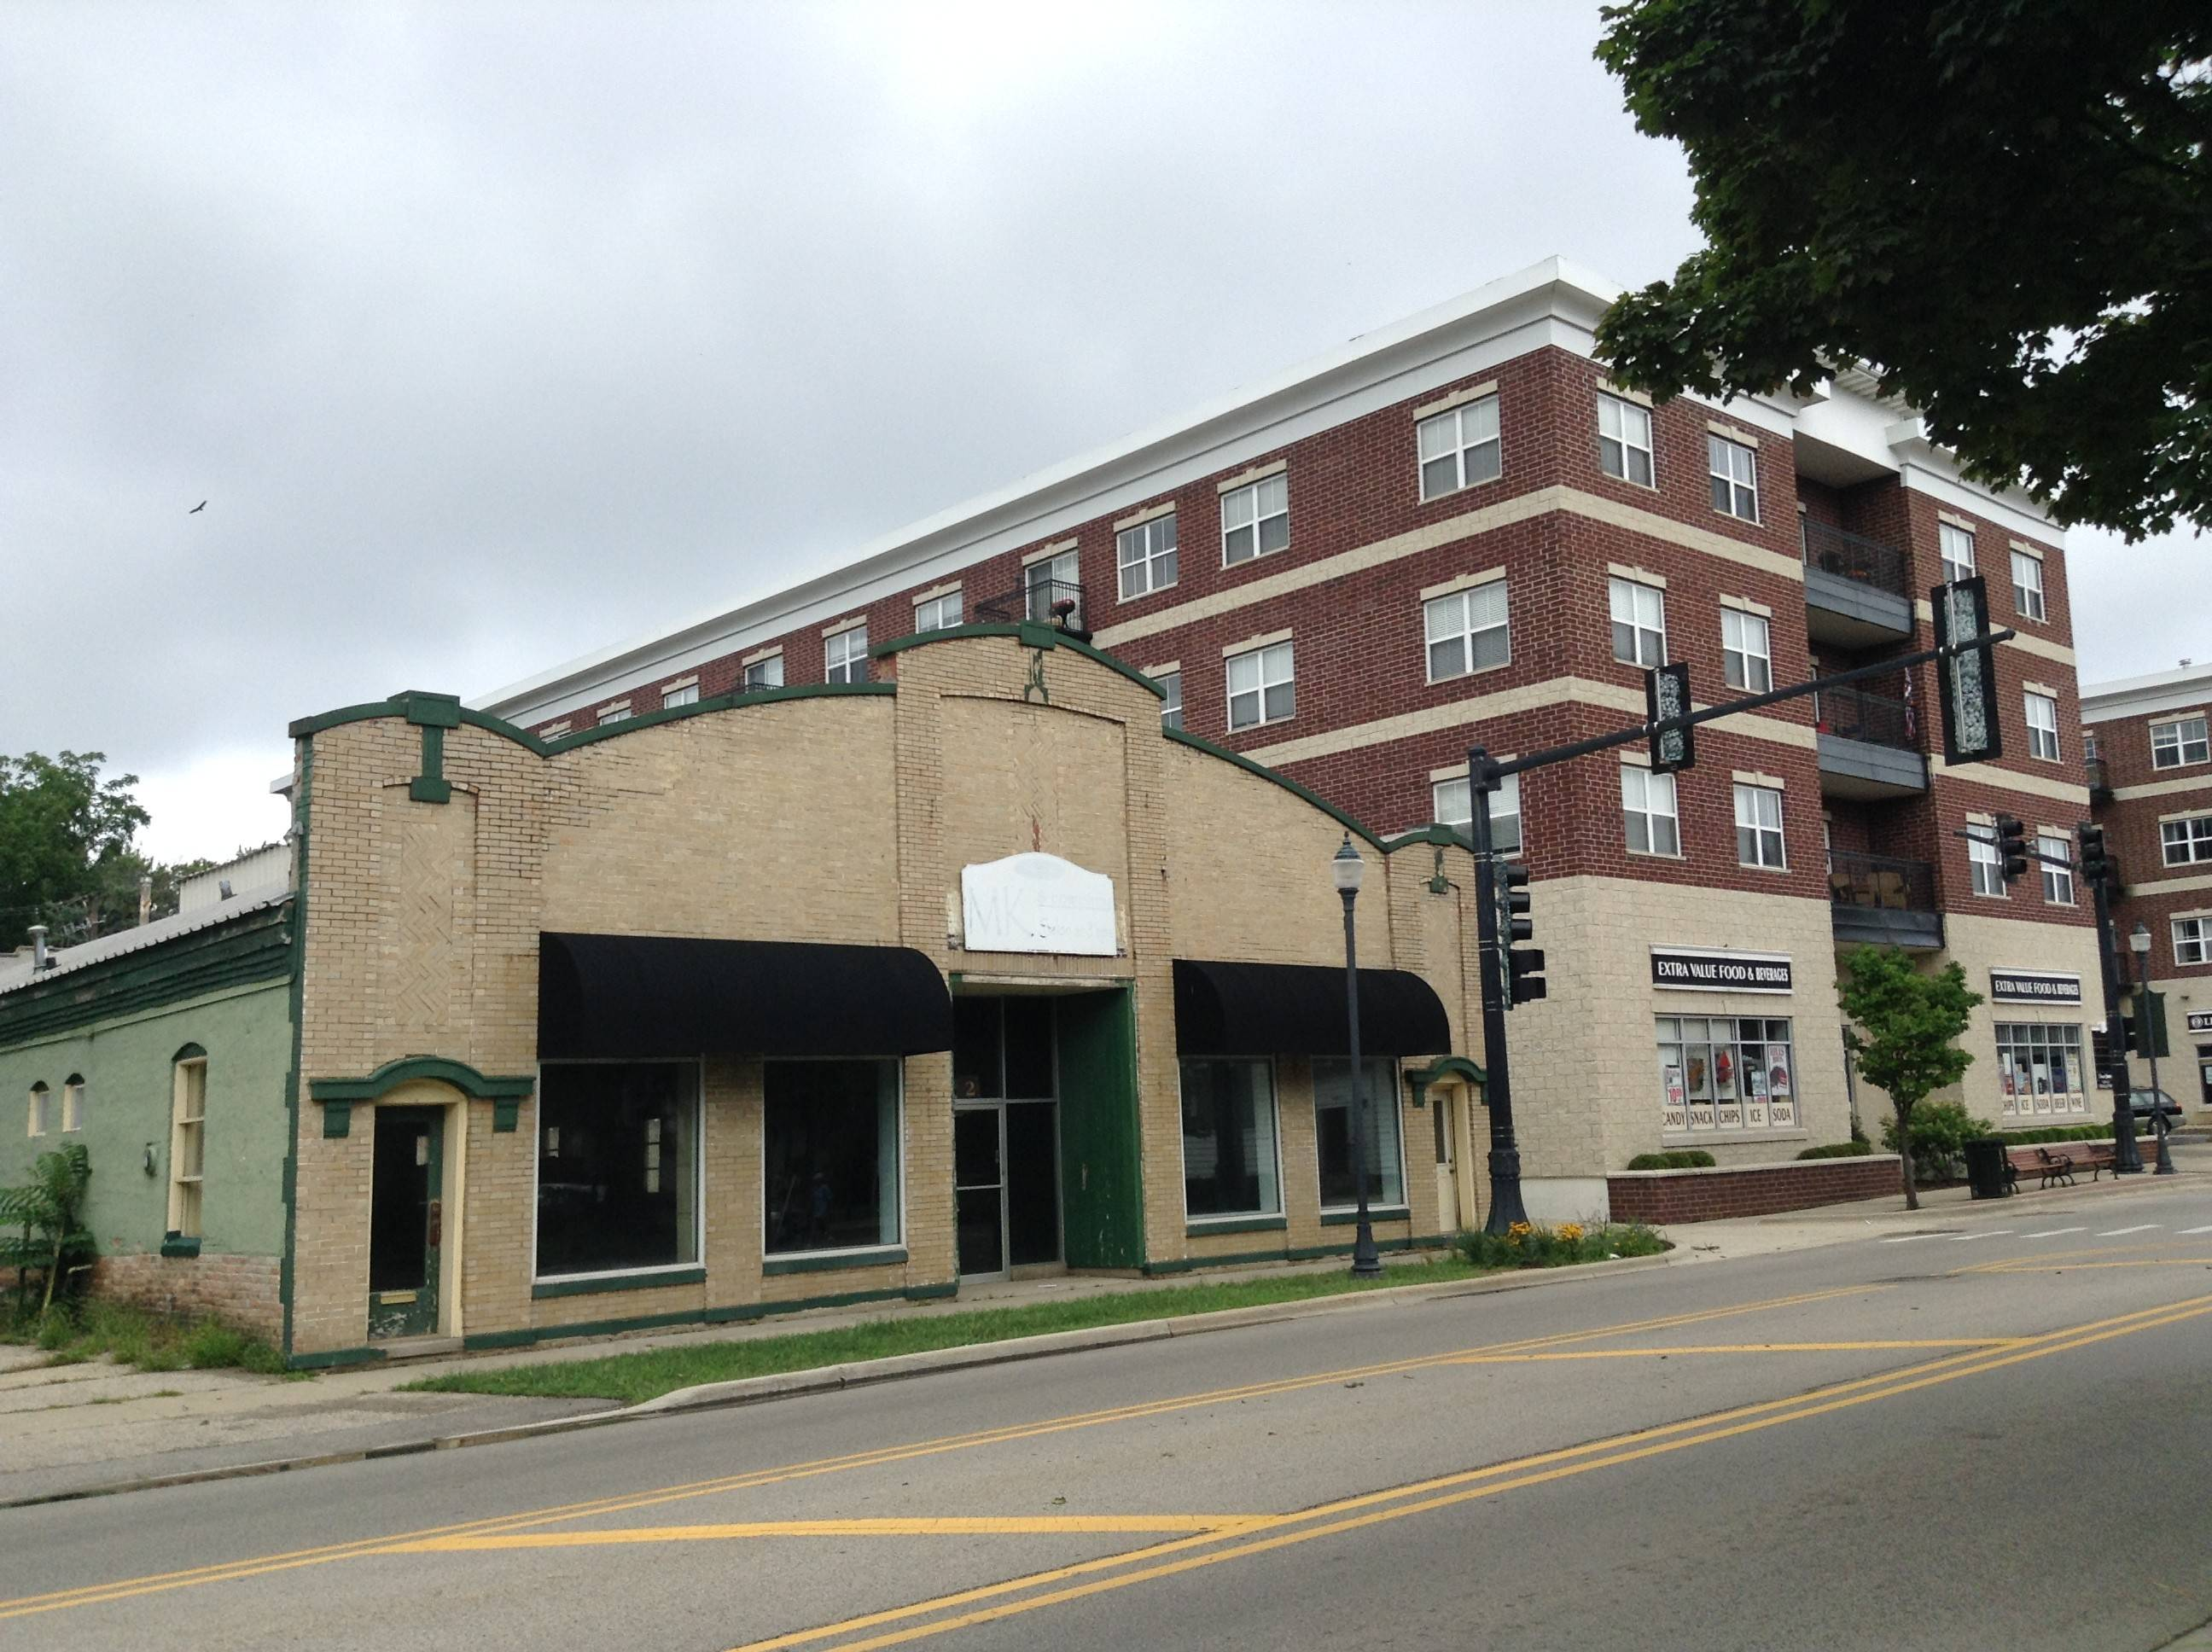 Grayslake village board trustees have approved a $100,000 economic development incentive agreement with Nage One LLC to revitalize what's commonly known as the Cupola building, 2 S. Lake St.